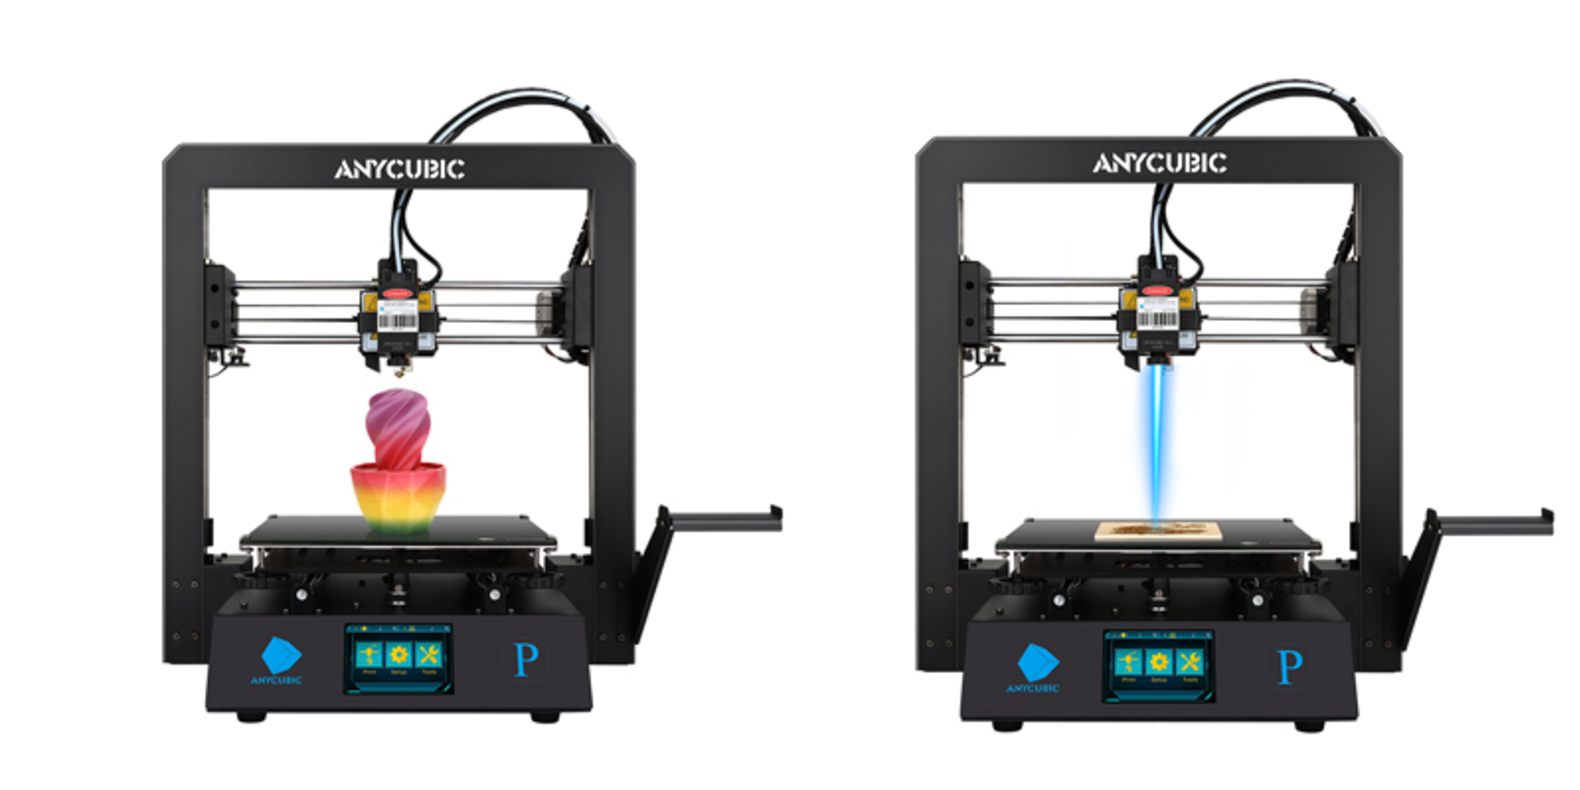 Anycubic Mega Pro: The New Arrival 2 In 1 Engraving 3D Printer